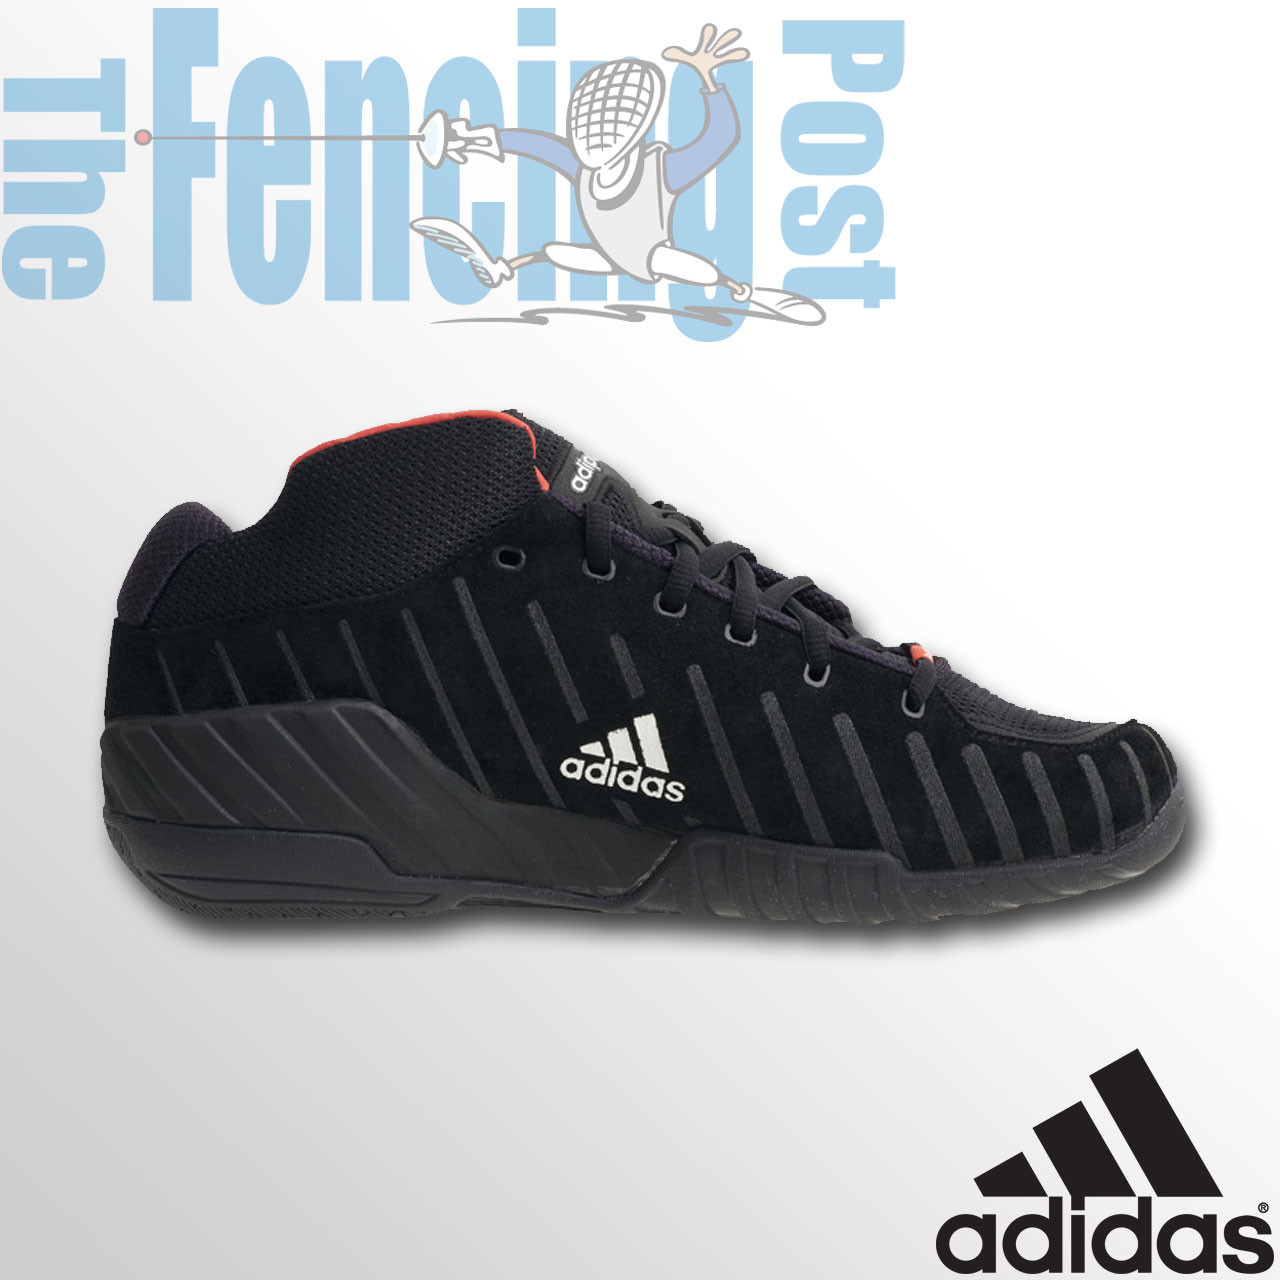 Fencing Shoe - Adidas adiPower FENCING Limited Edition- Sizes only 12.5 ; 13, 16 Close out